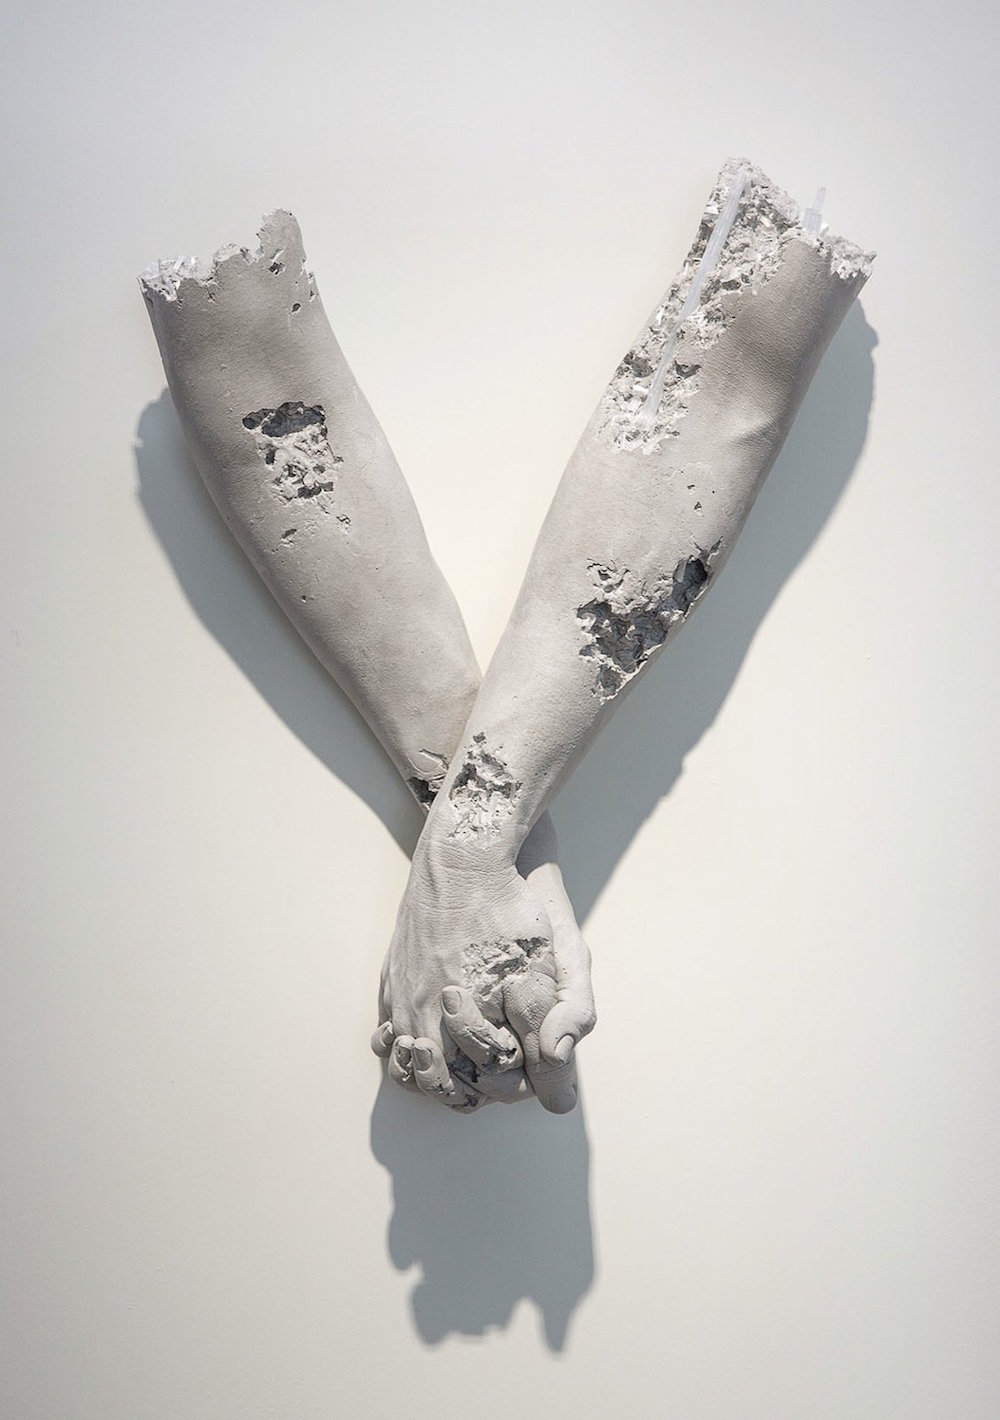 New Hydrostone Sculptures by Daniel Arsham Isolate Human Gestures | Colossal